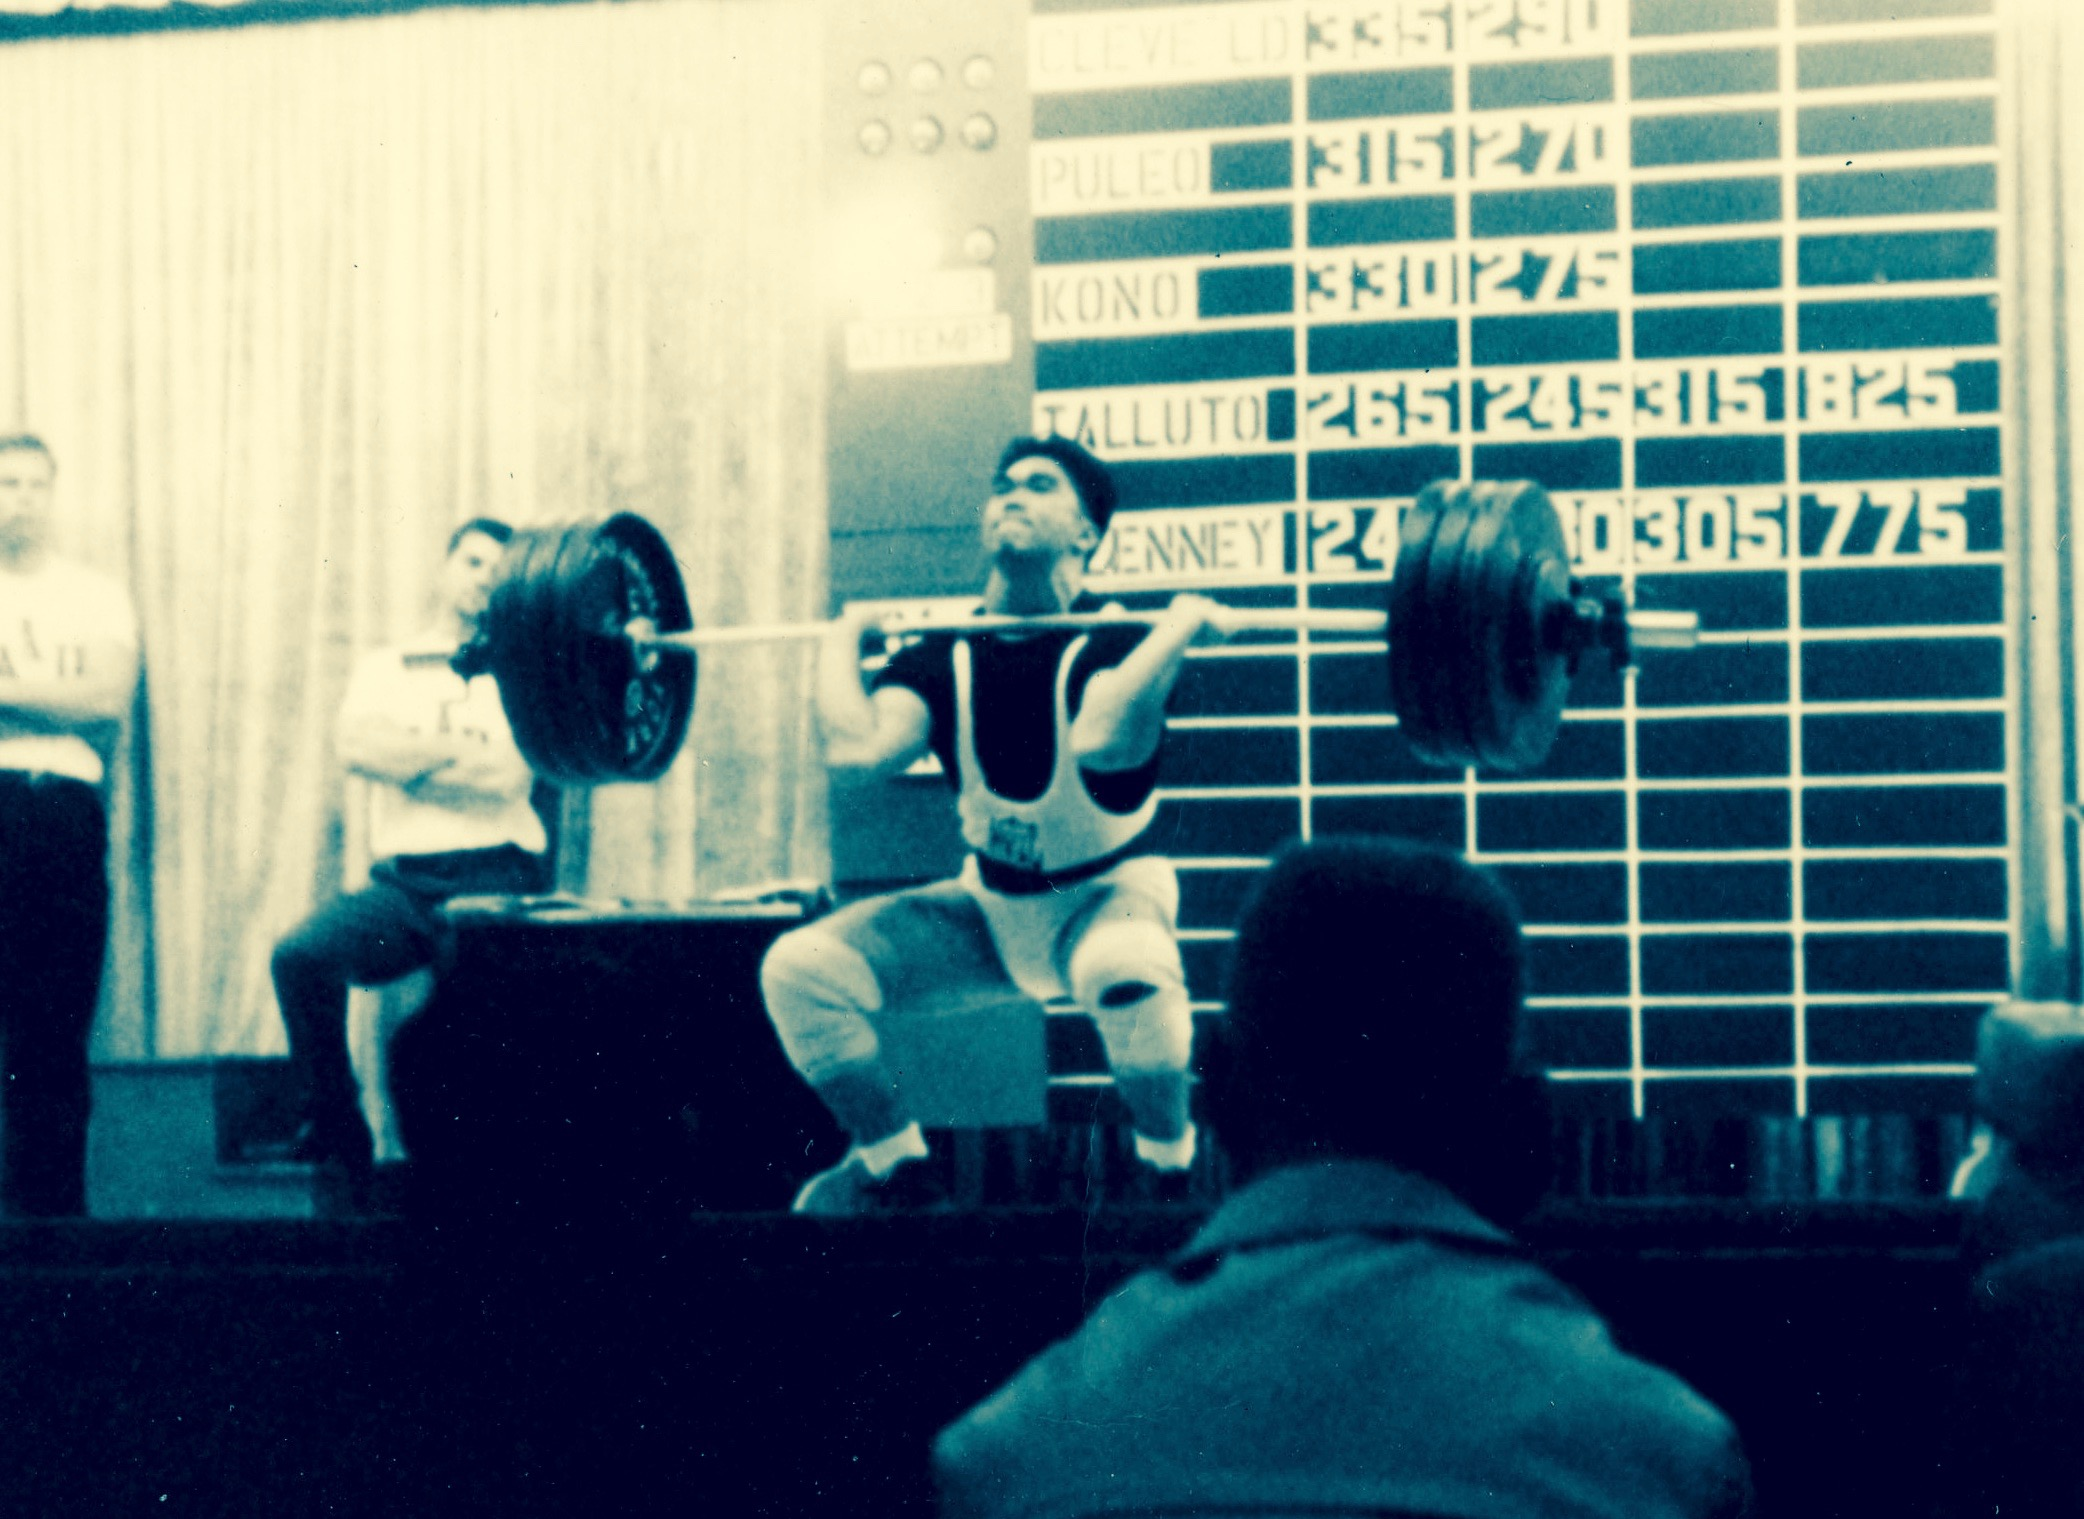 Takano Weightlifting - Olympic Weightlifting